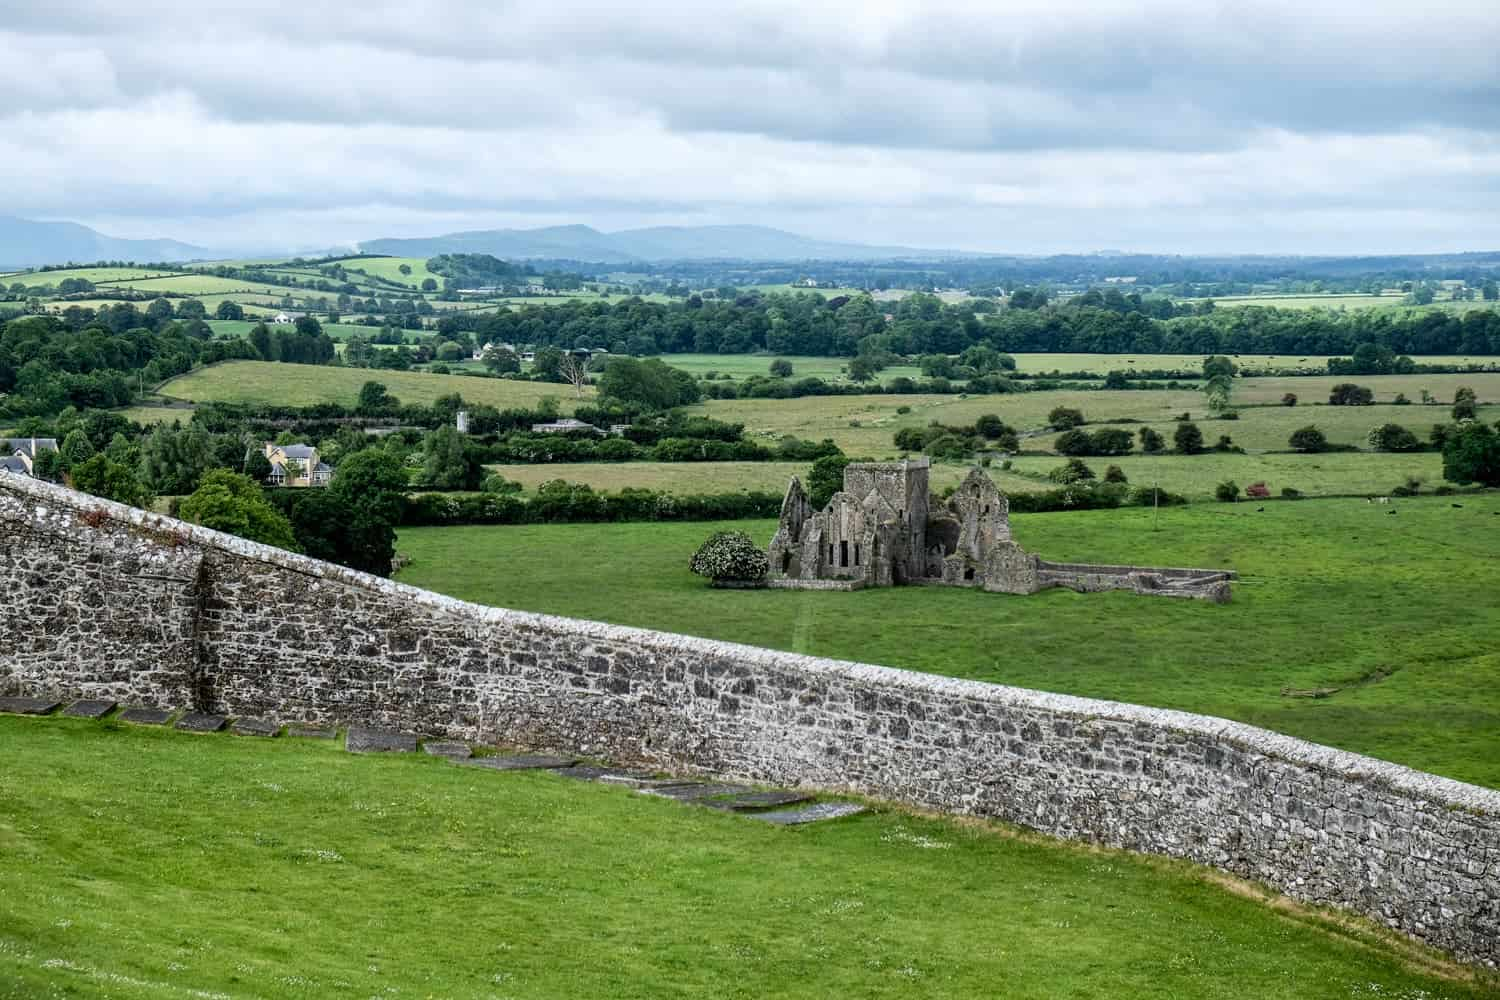 The Rock of Cashel, Hore Abbery, Tipperary, Ireland, Ireland's Ancient East